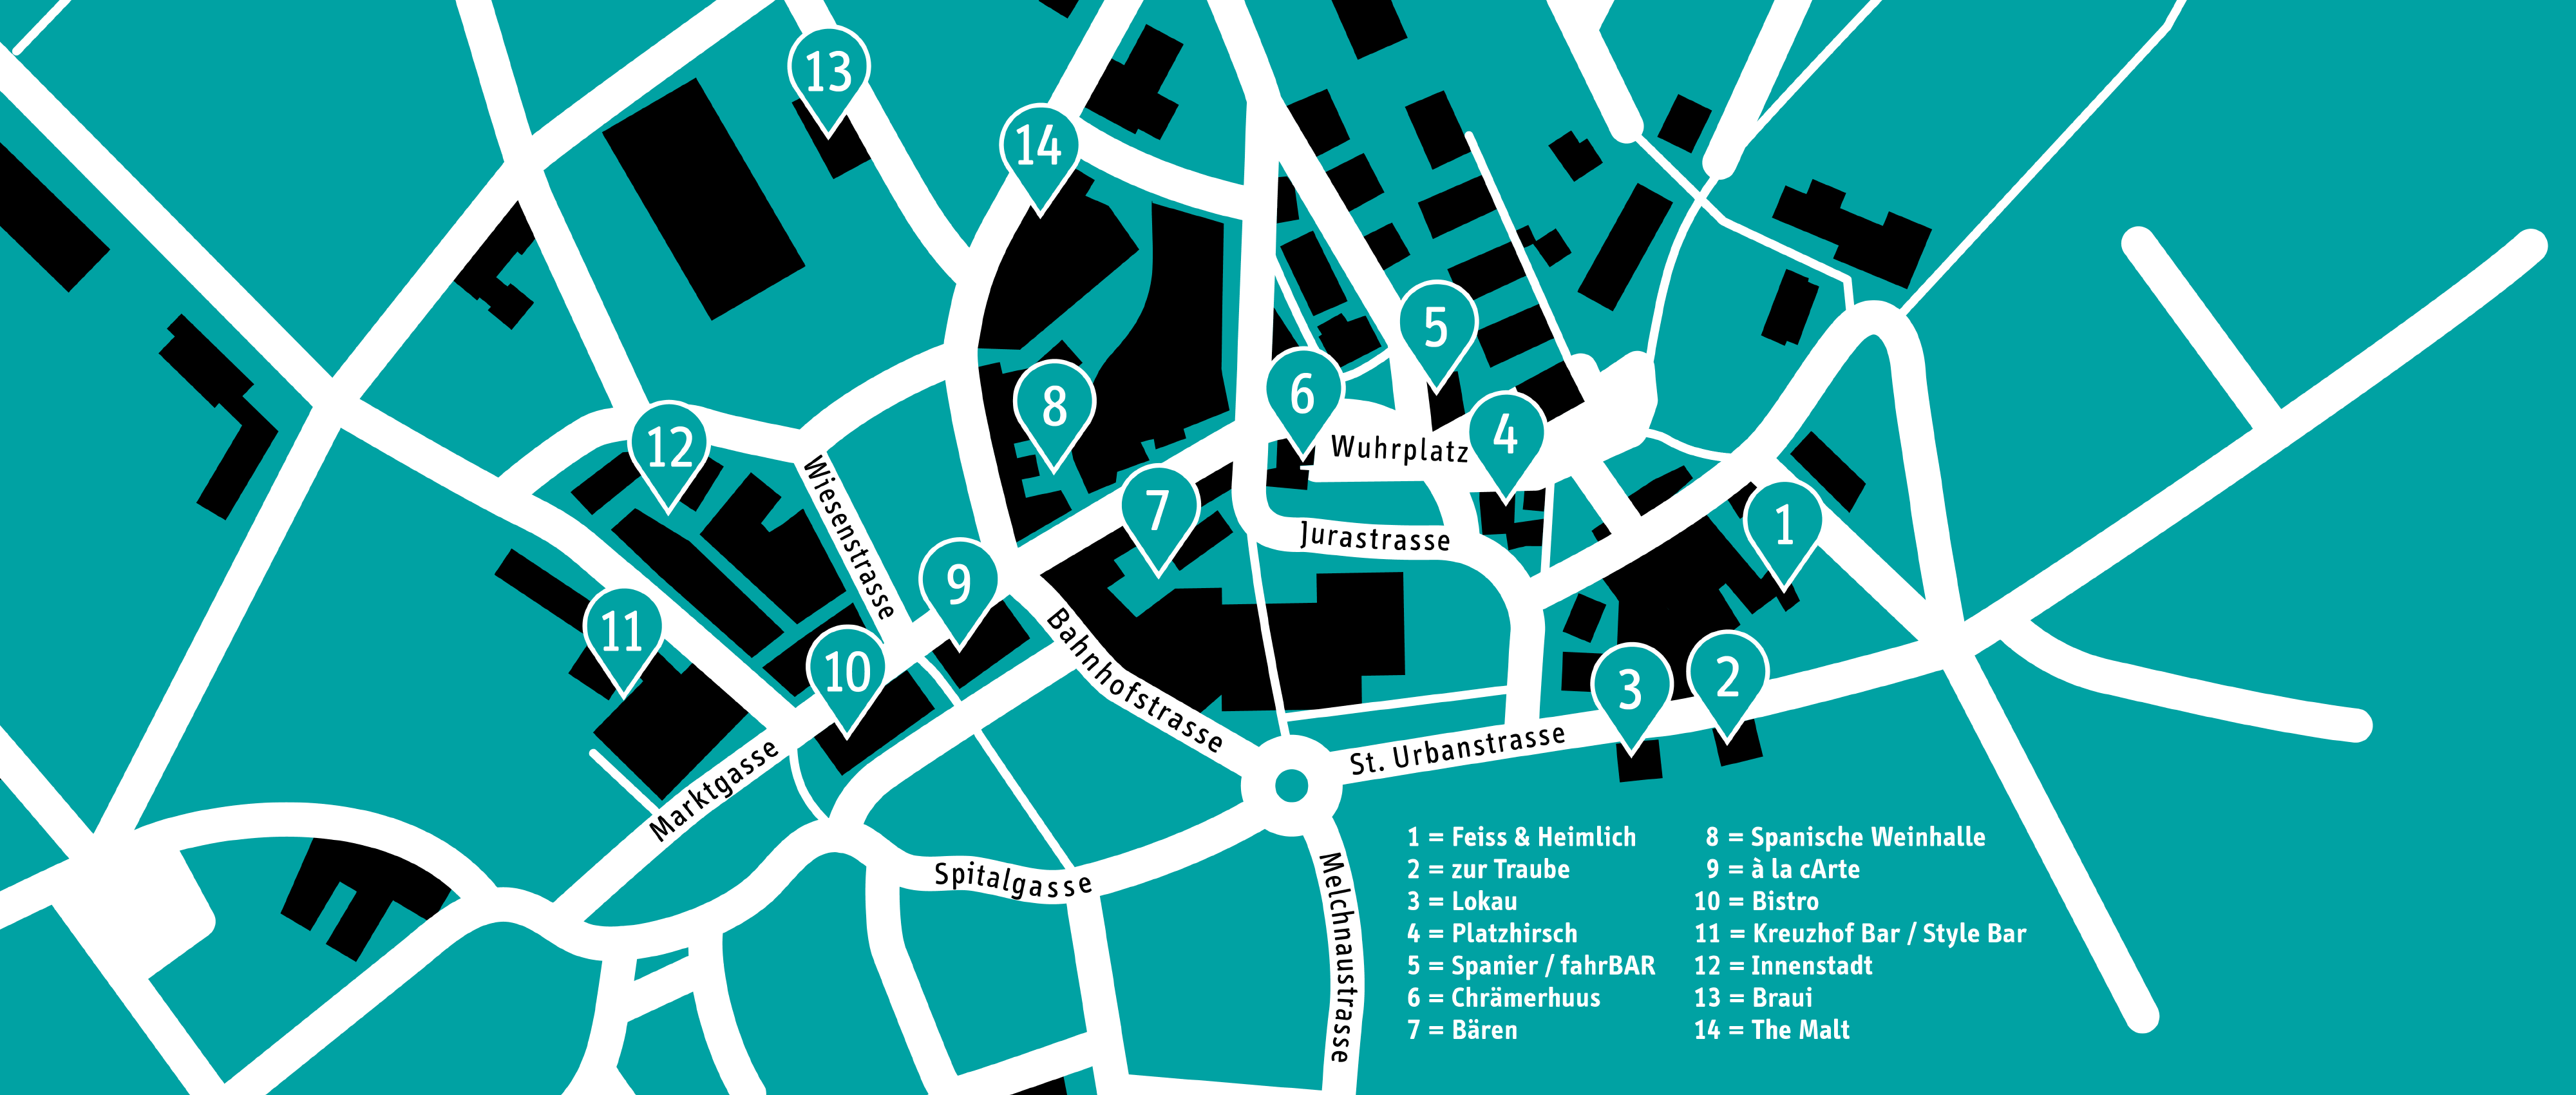 streetfestival 2019 Langenthal map